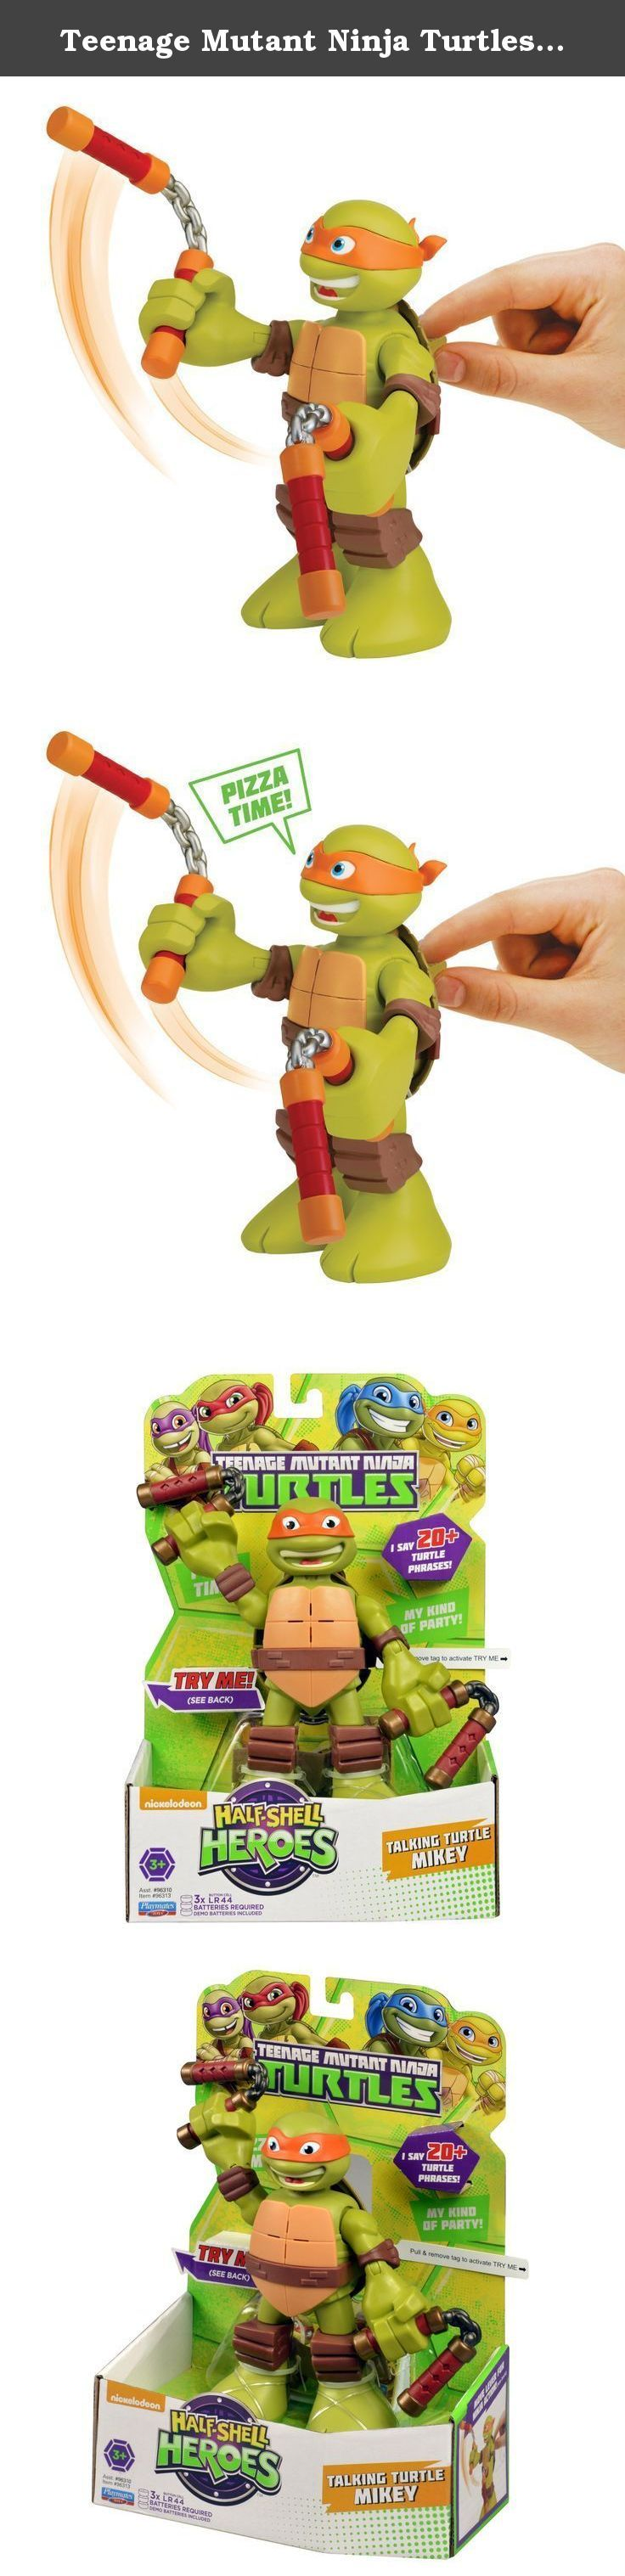 Teenage Mutant Ninja Turtles Pre-Cool Half Shell Heroes 6 Inch Michelangelo Talking Turtles Figure. Coming out of their shells for the very first time, the Half-Shell Heroes are ready for non-stop ninja adventure! You can join the fun-loving brothers in their pizza-fueled missions as they team up to mess with menacing mutants and stop the Shredder.